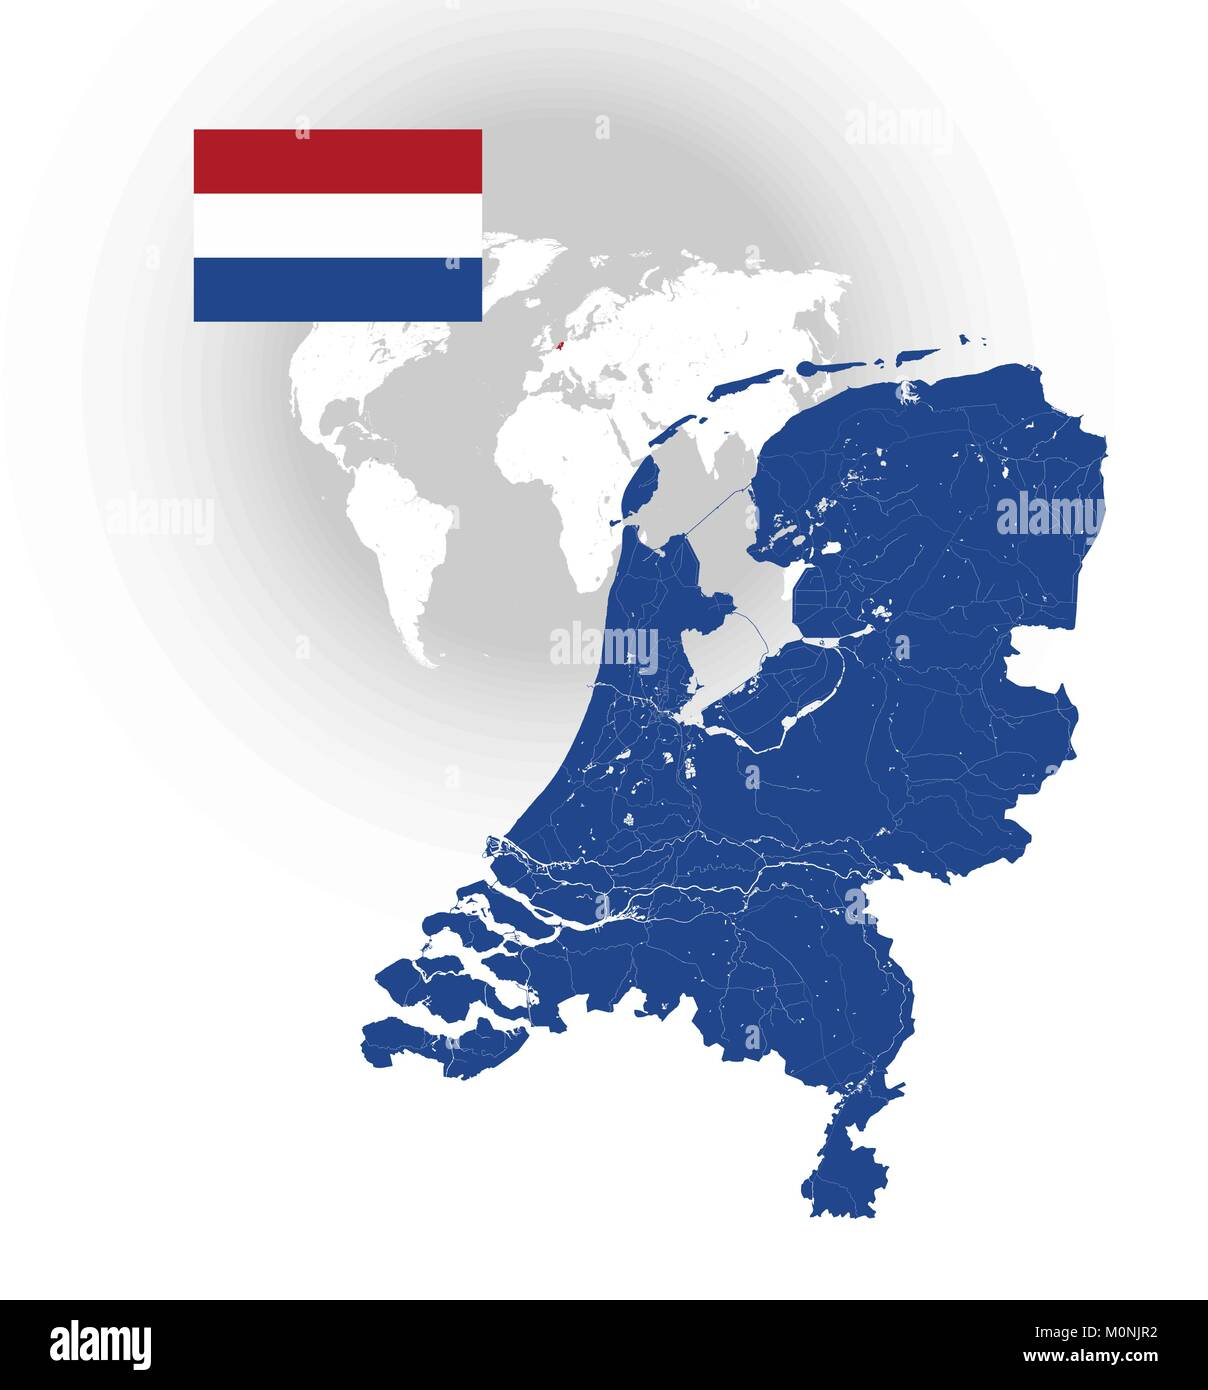 Map of netherlands with rivers and lakes national flag of stock map of netherlands with rivers and lakes national flag of netherlands and world map as background please look at my other images of cartographic ser gumiabroncs Image collections